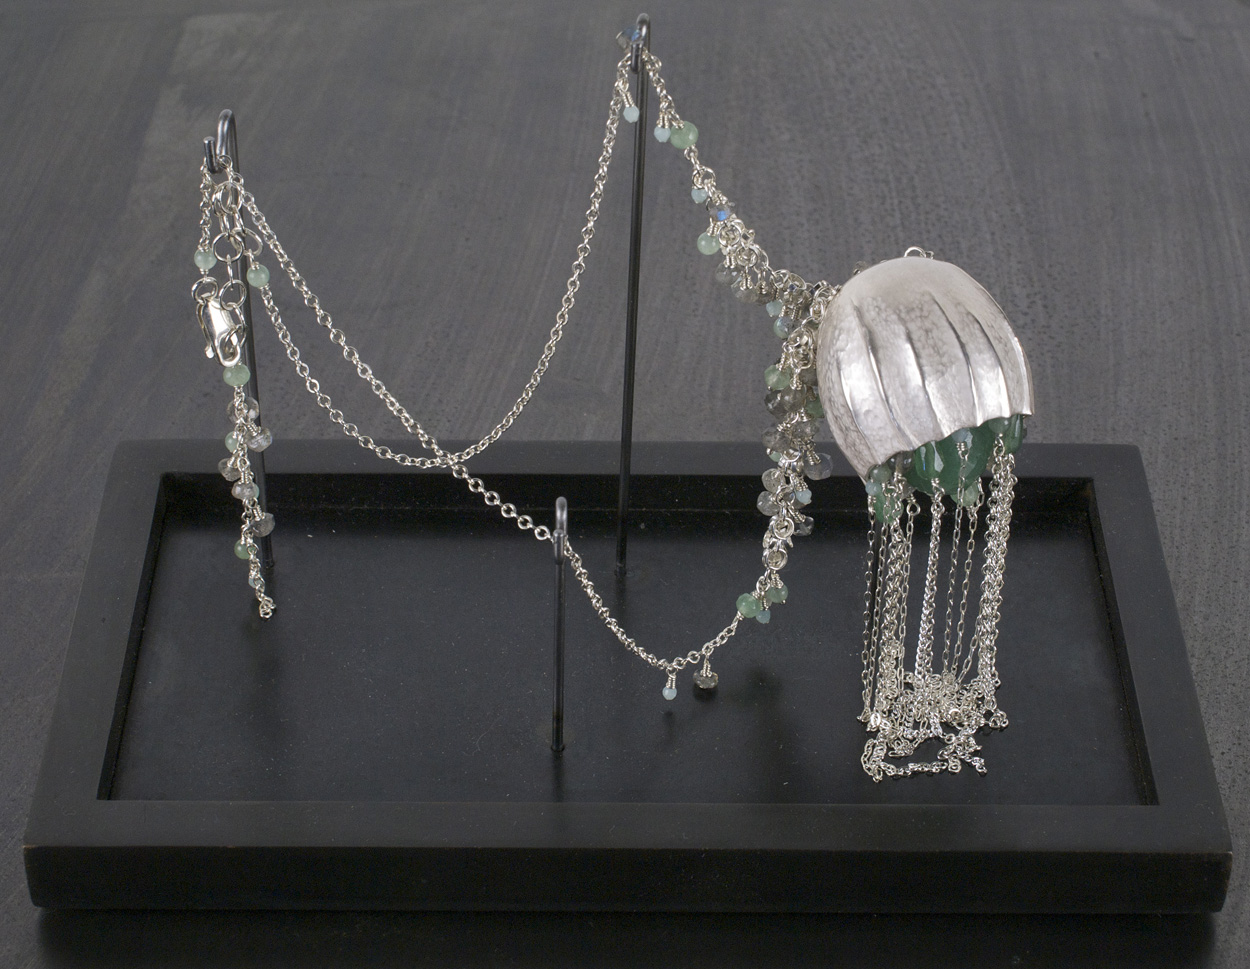 Catherine Grisez   Squirt , 2009  Sterling silver, aventurine, labrodorite, steel base  Courtesy of Traver Gallery